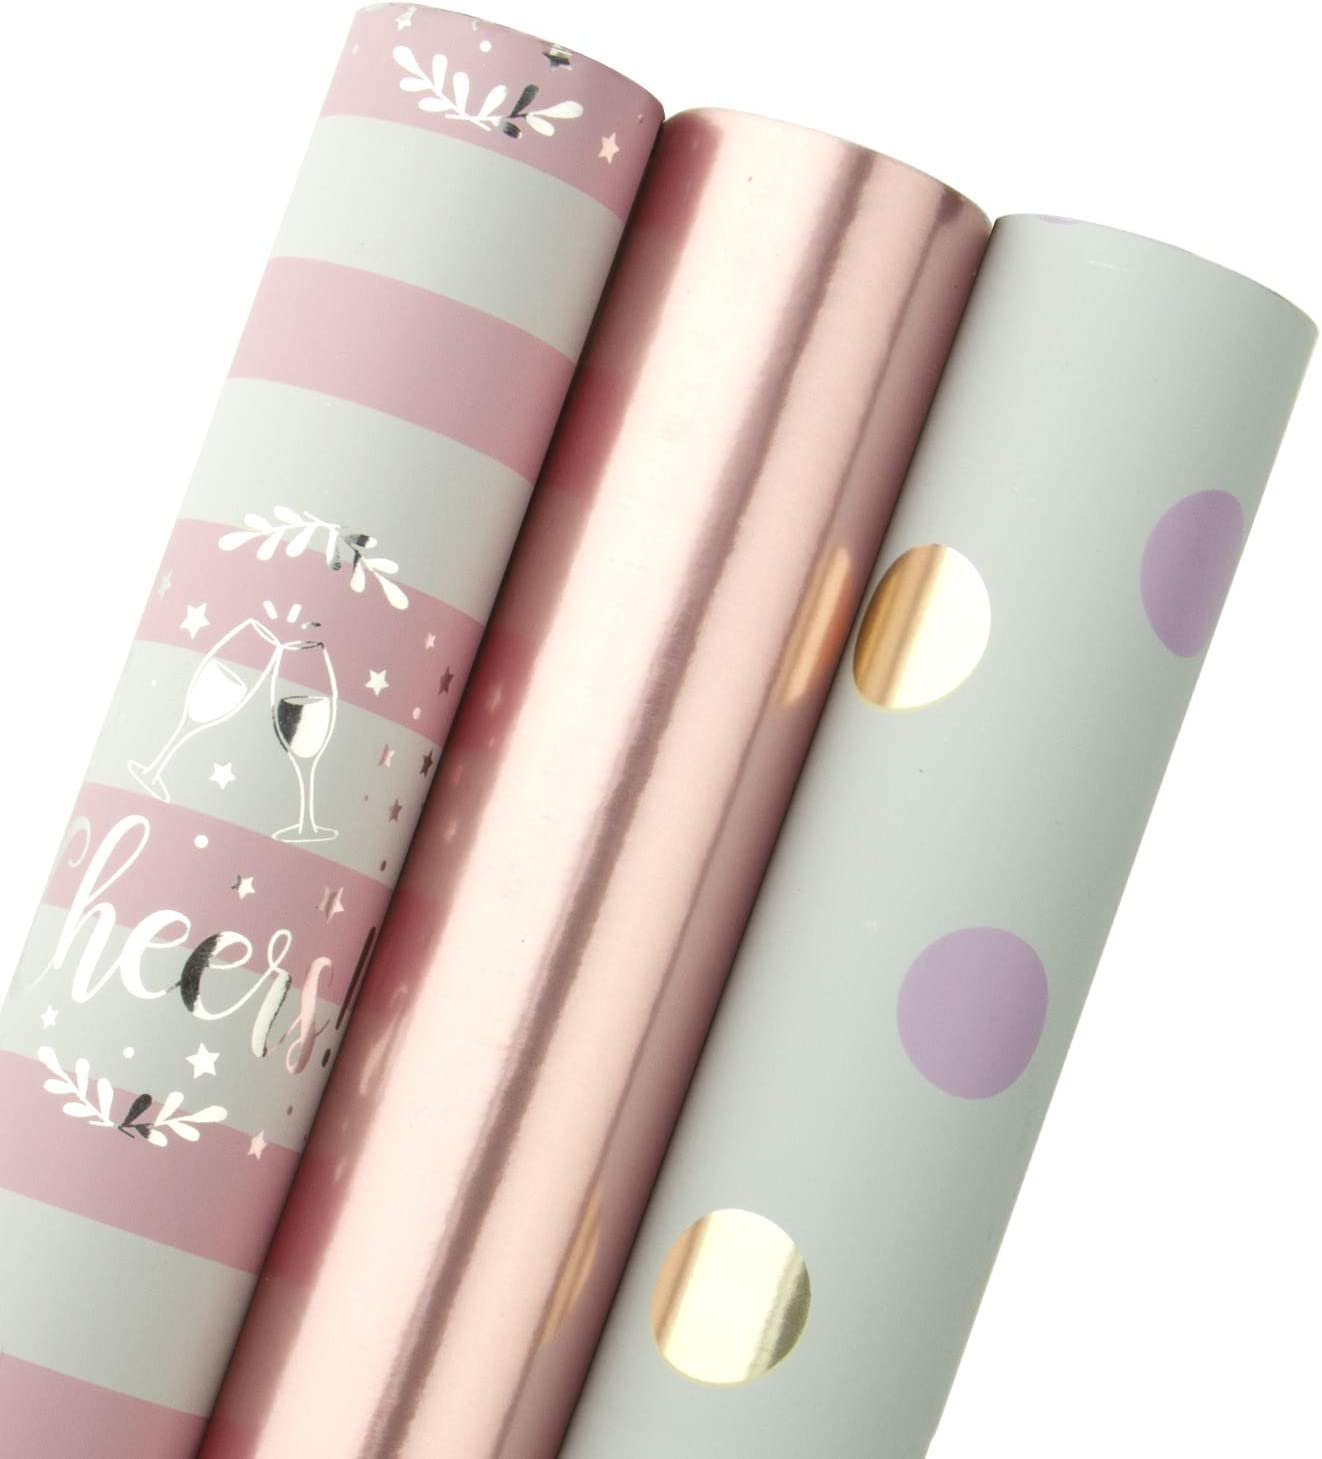 WRAPAHOLIC Gift Wrapping Paper Roll - Rose Gold and Pink Set for Birthday, Holiday, Wedding, Baby Shower Gift Wrap - 3 Rolls - 30 inch X 120 inch Per Roll